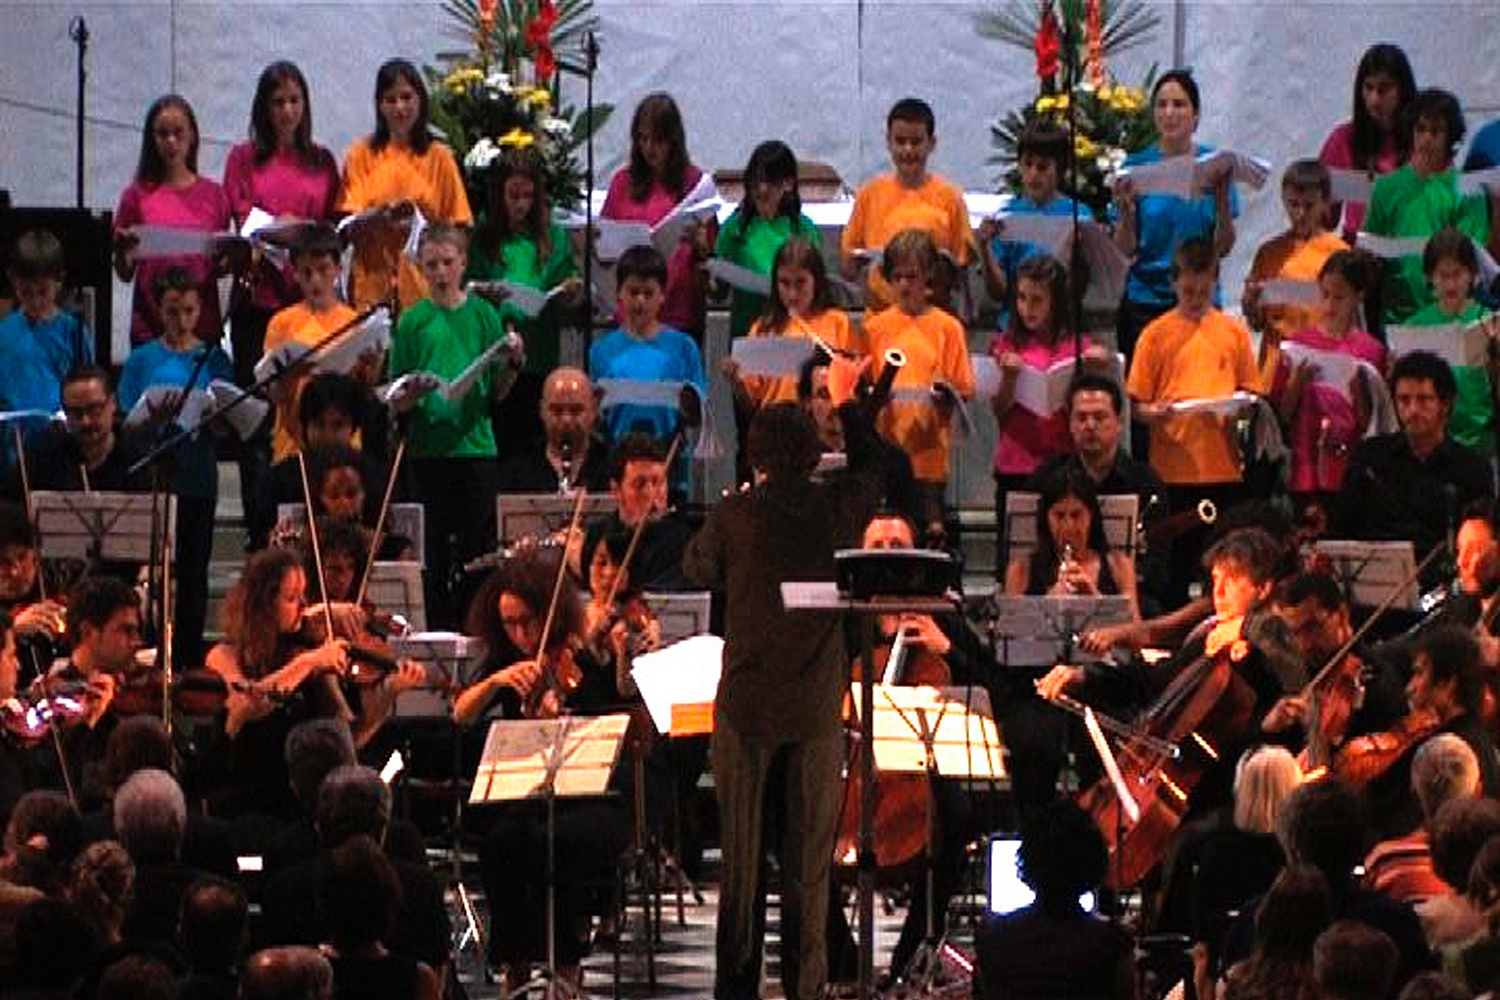 2009 Colico, Italy: Alessio Allegrini conducting the Human Rights Orchestra and the children's choir of the Festival Musica sull'Acqua